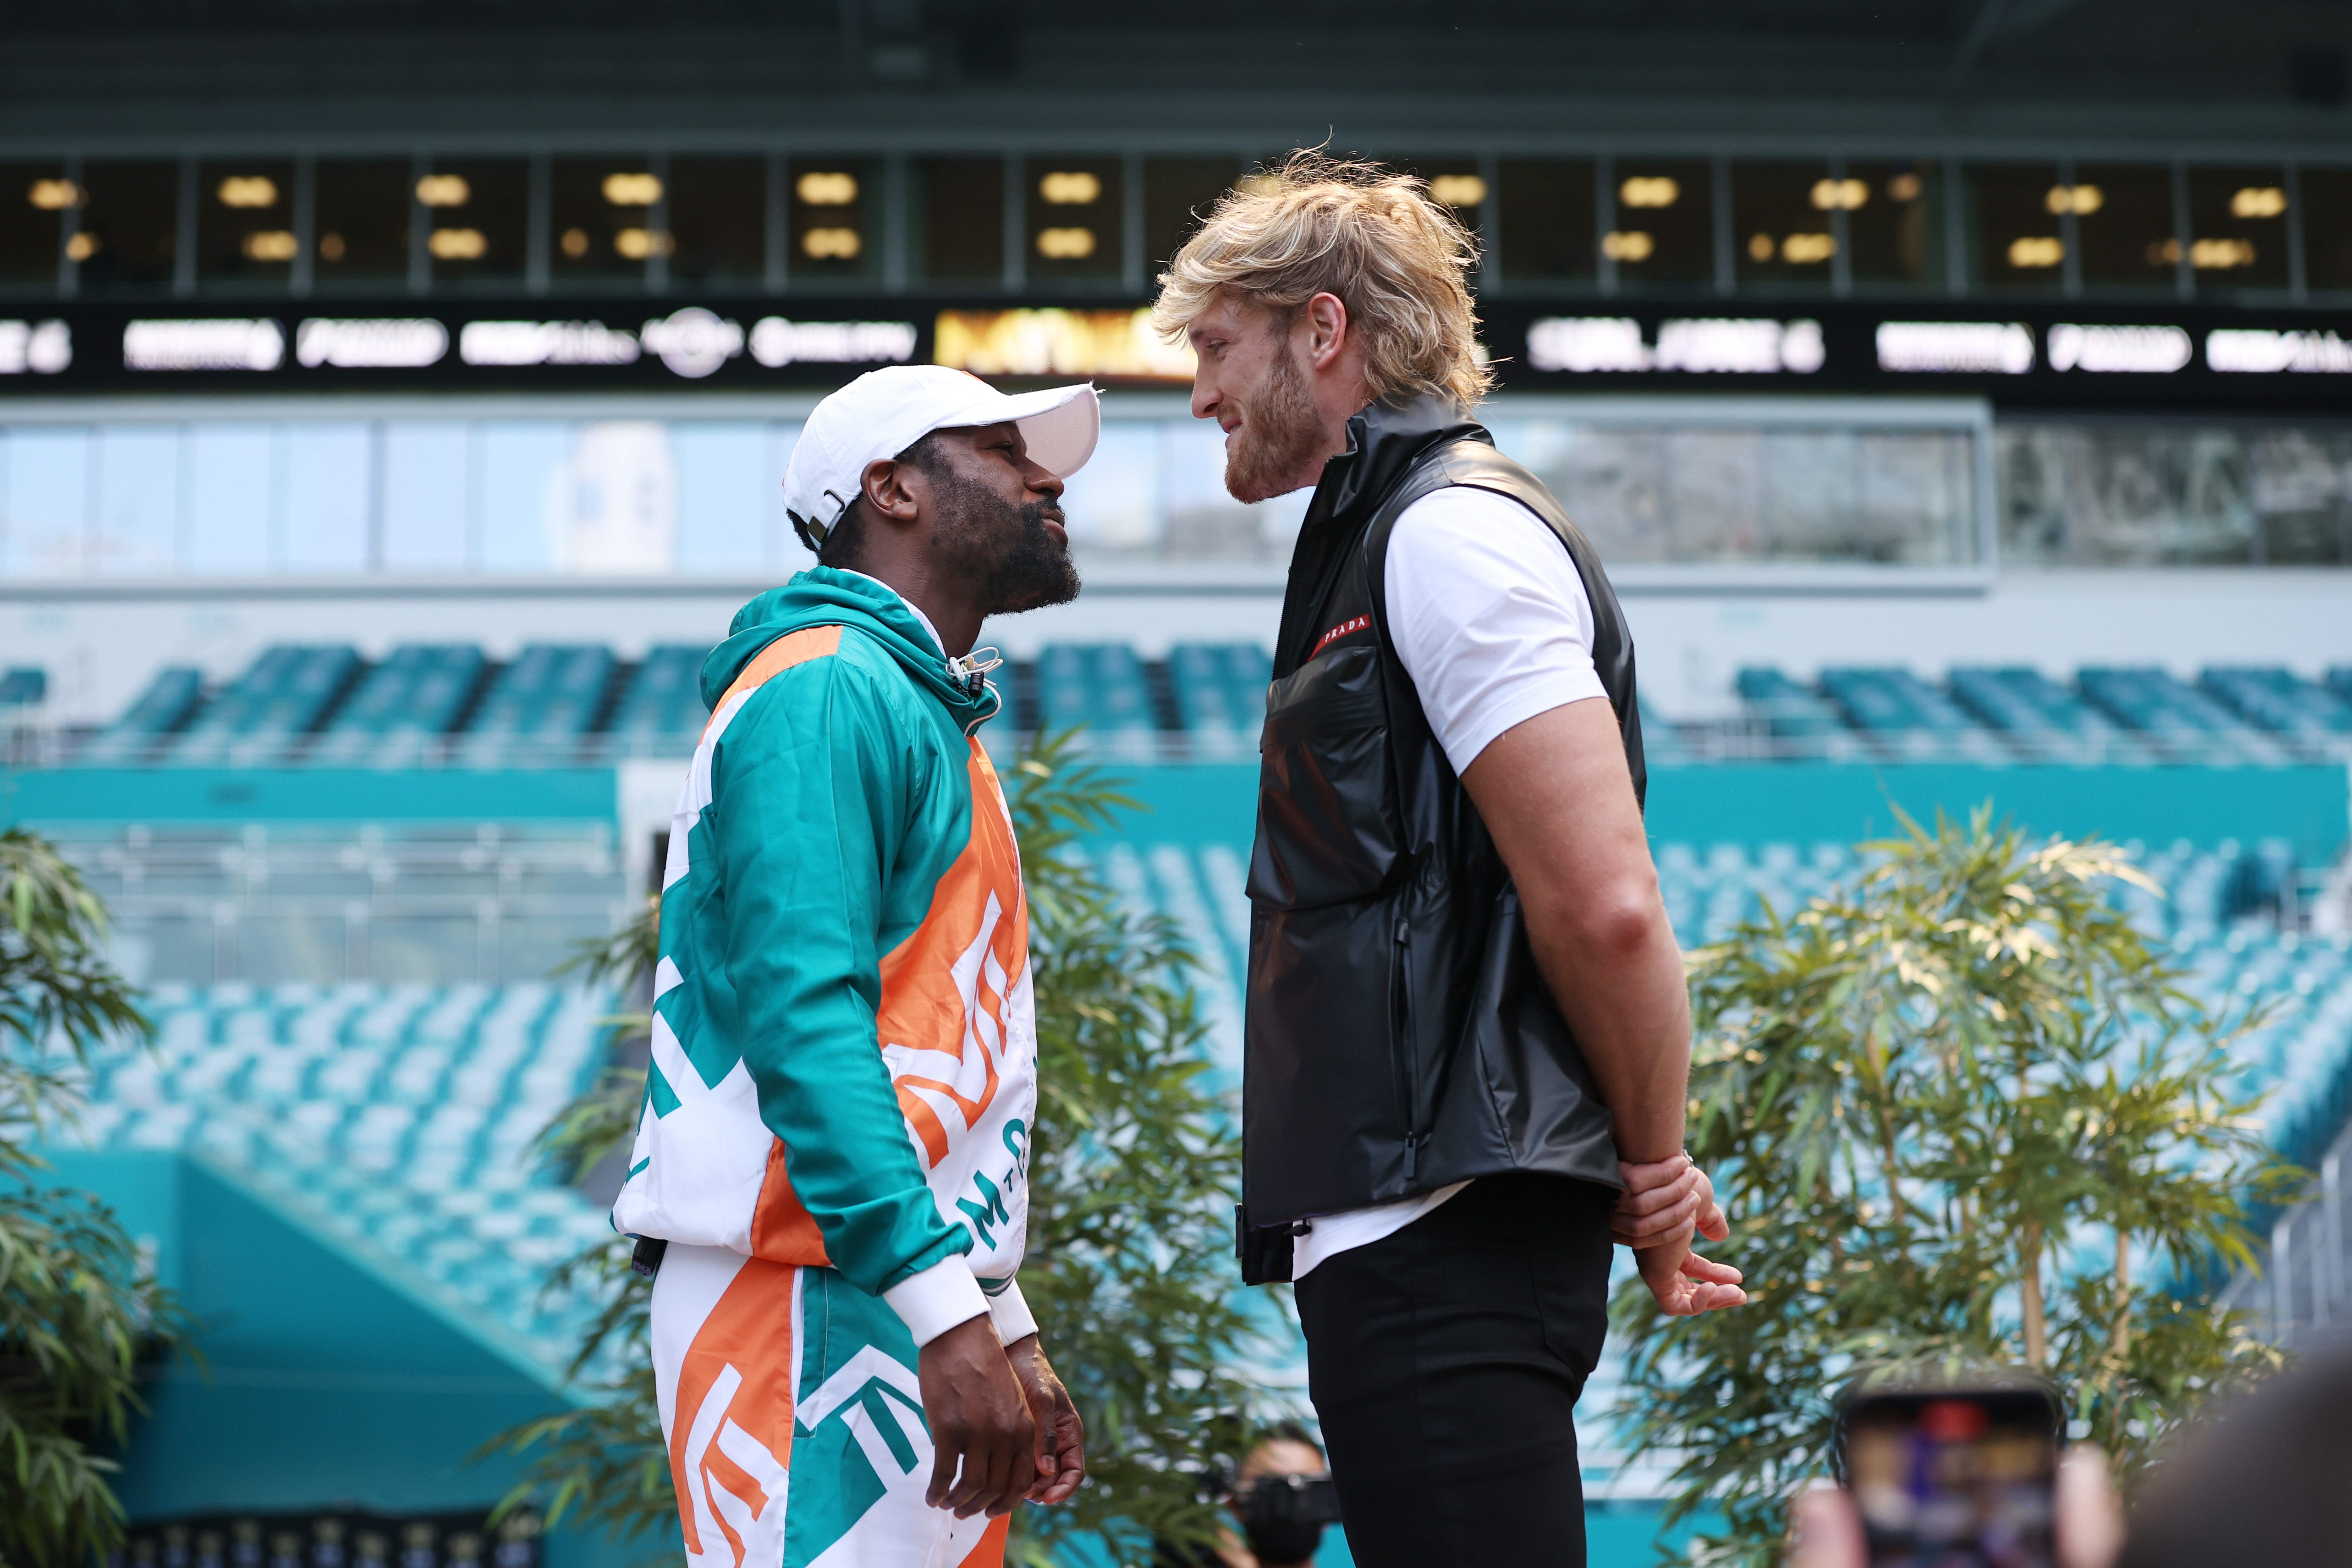 'I want it more:' Can Logan Paul actually beat Floyd Mayweather?